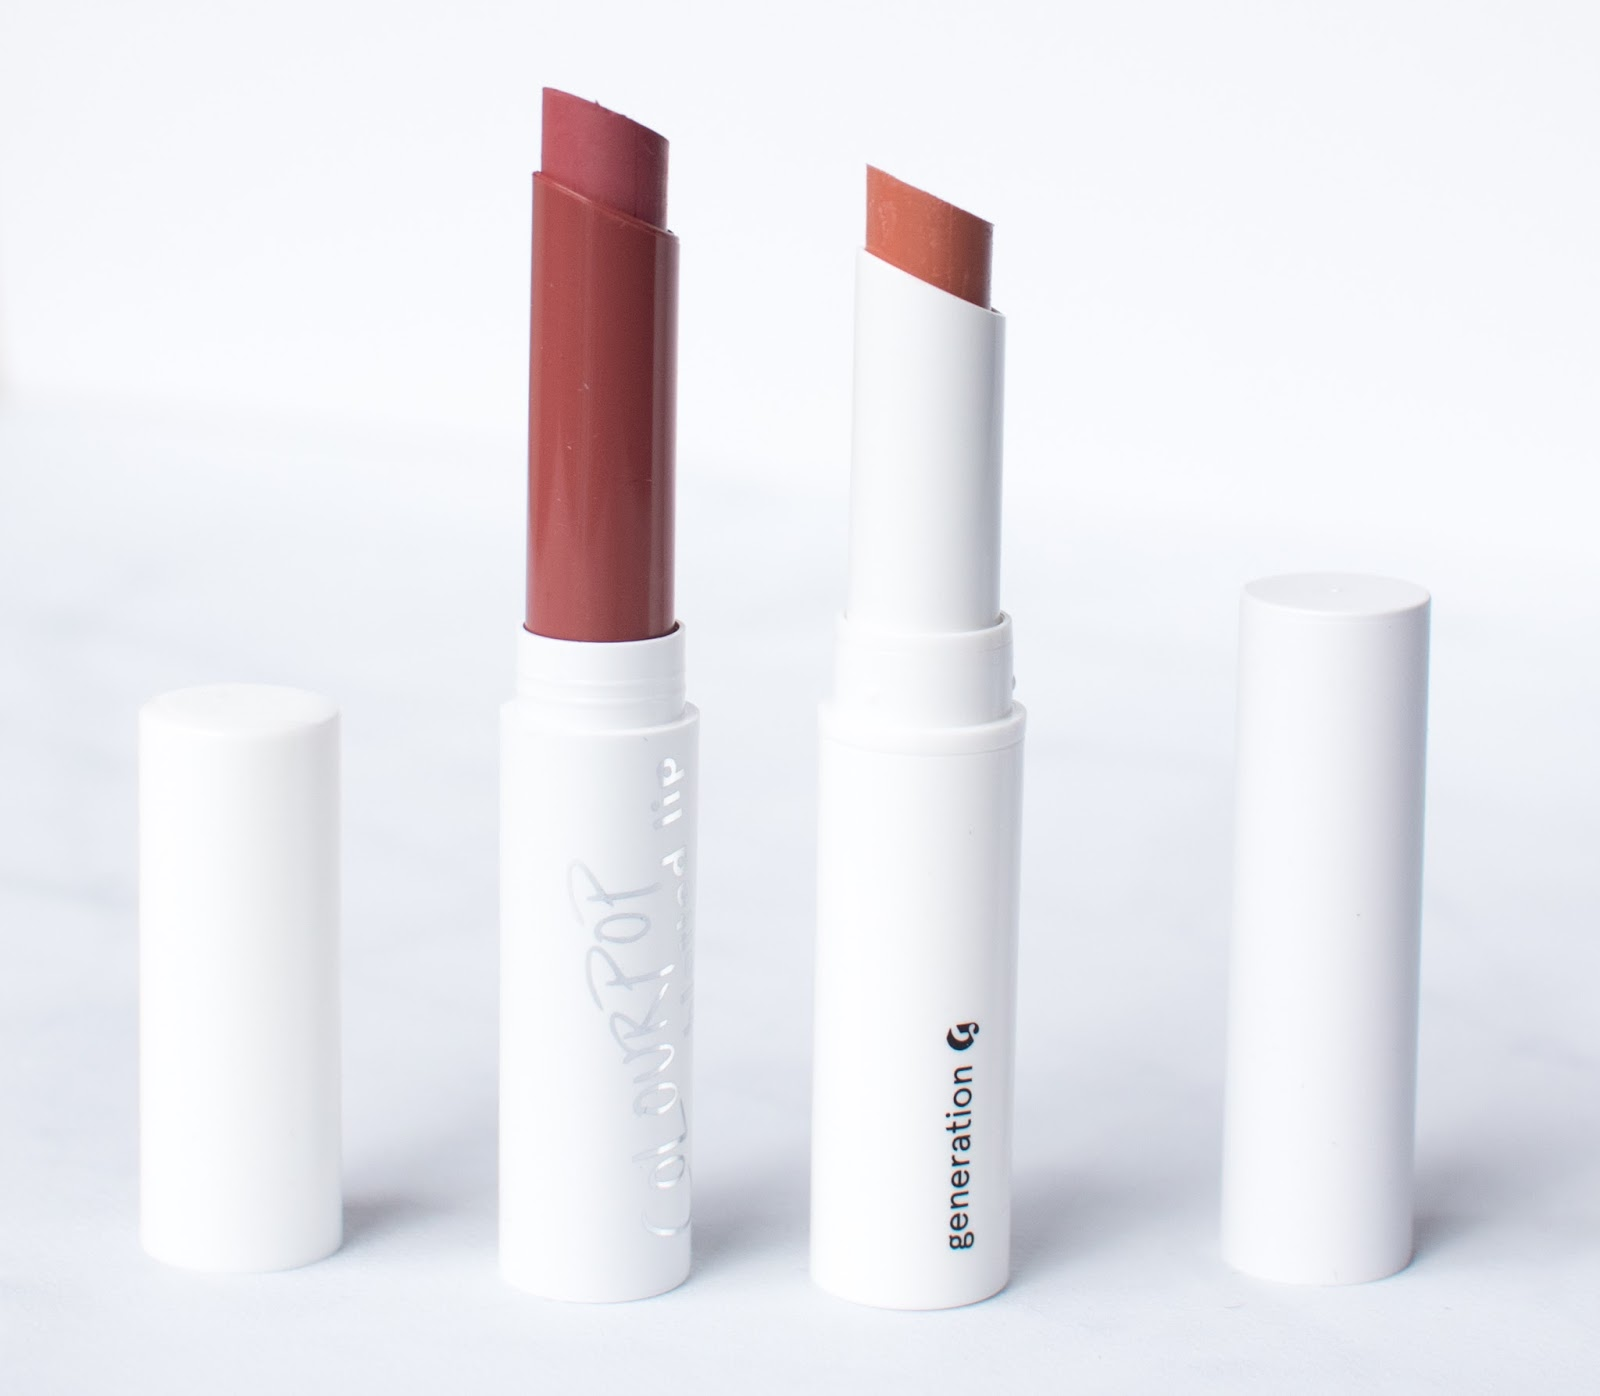 Colourpop Blotted Lip vs Glossier Generation G Lipstick Comparison